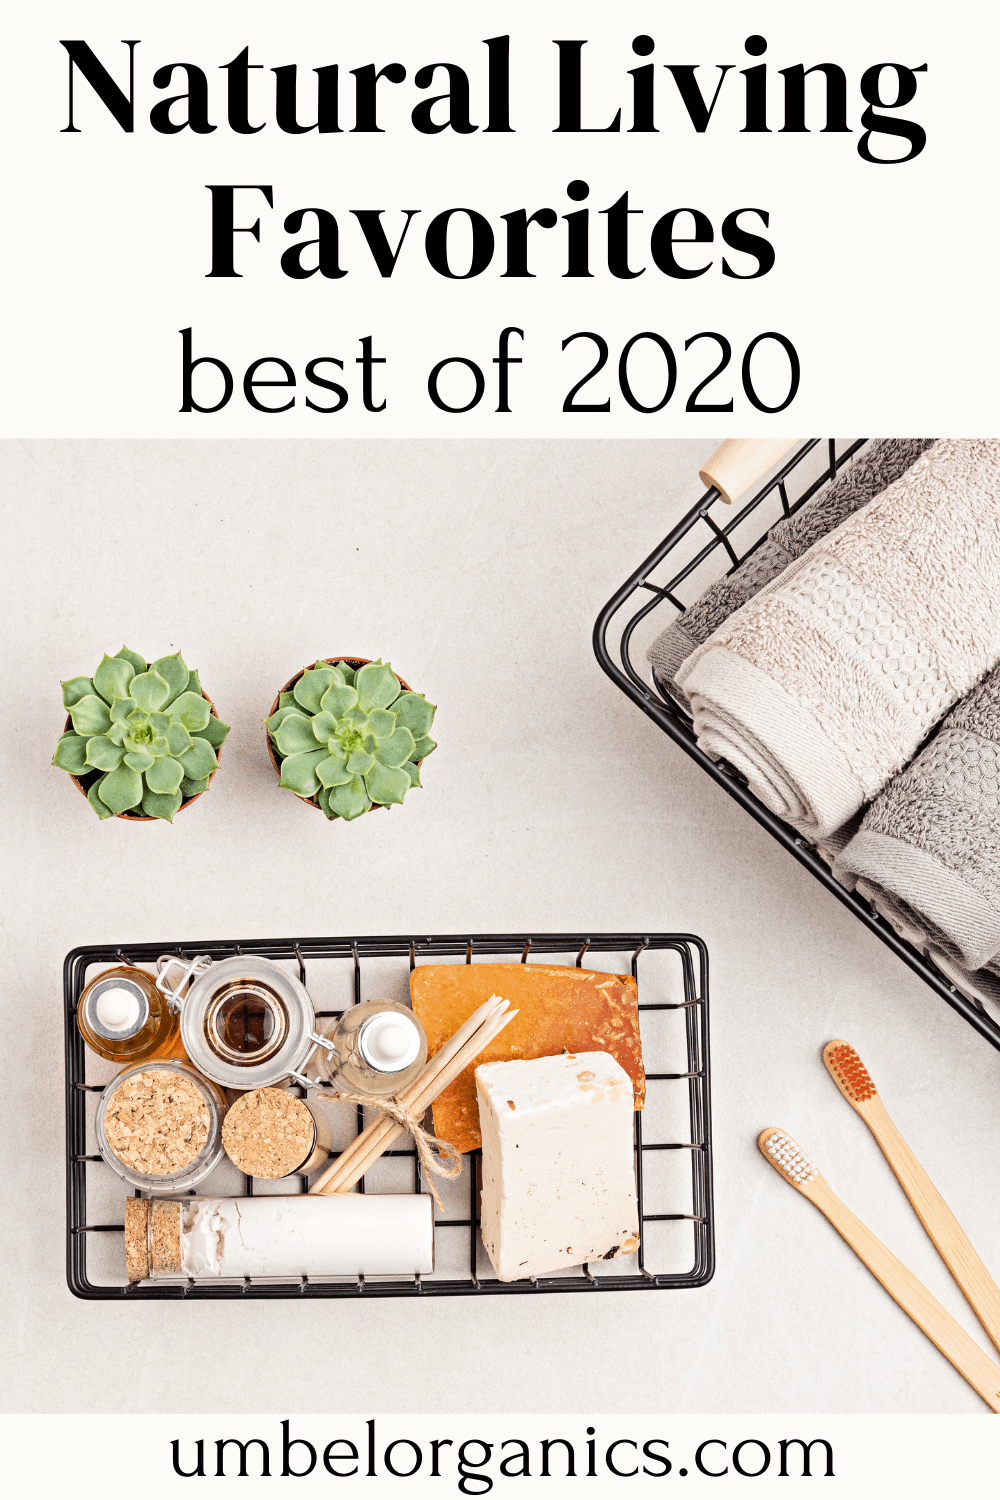 natural living products with succulent plants, bamboo toothbrushes and towels